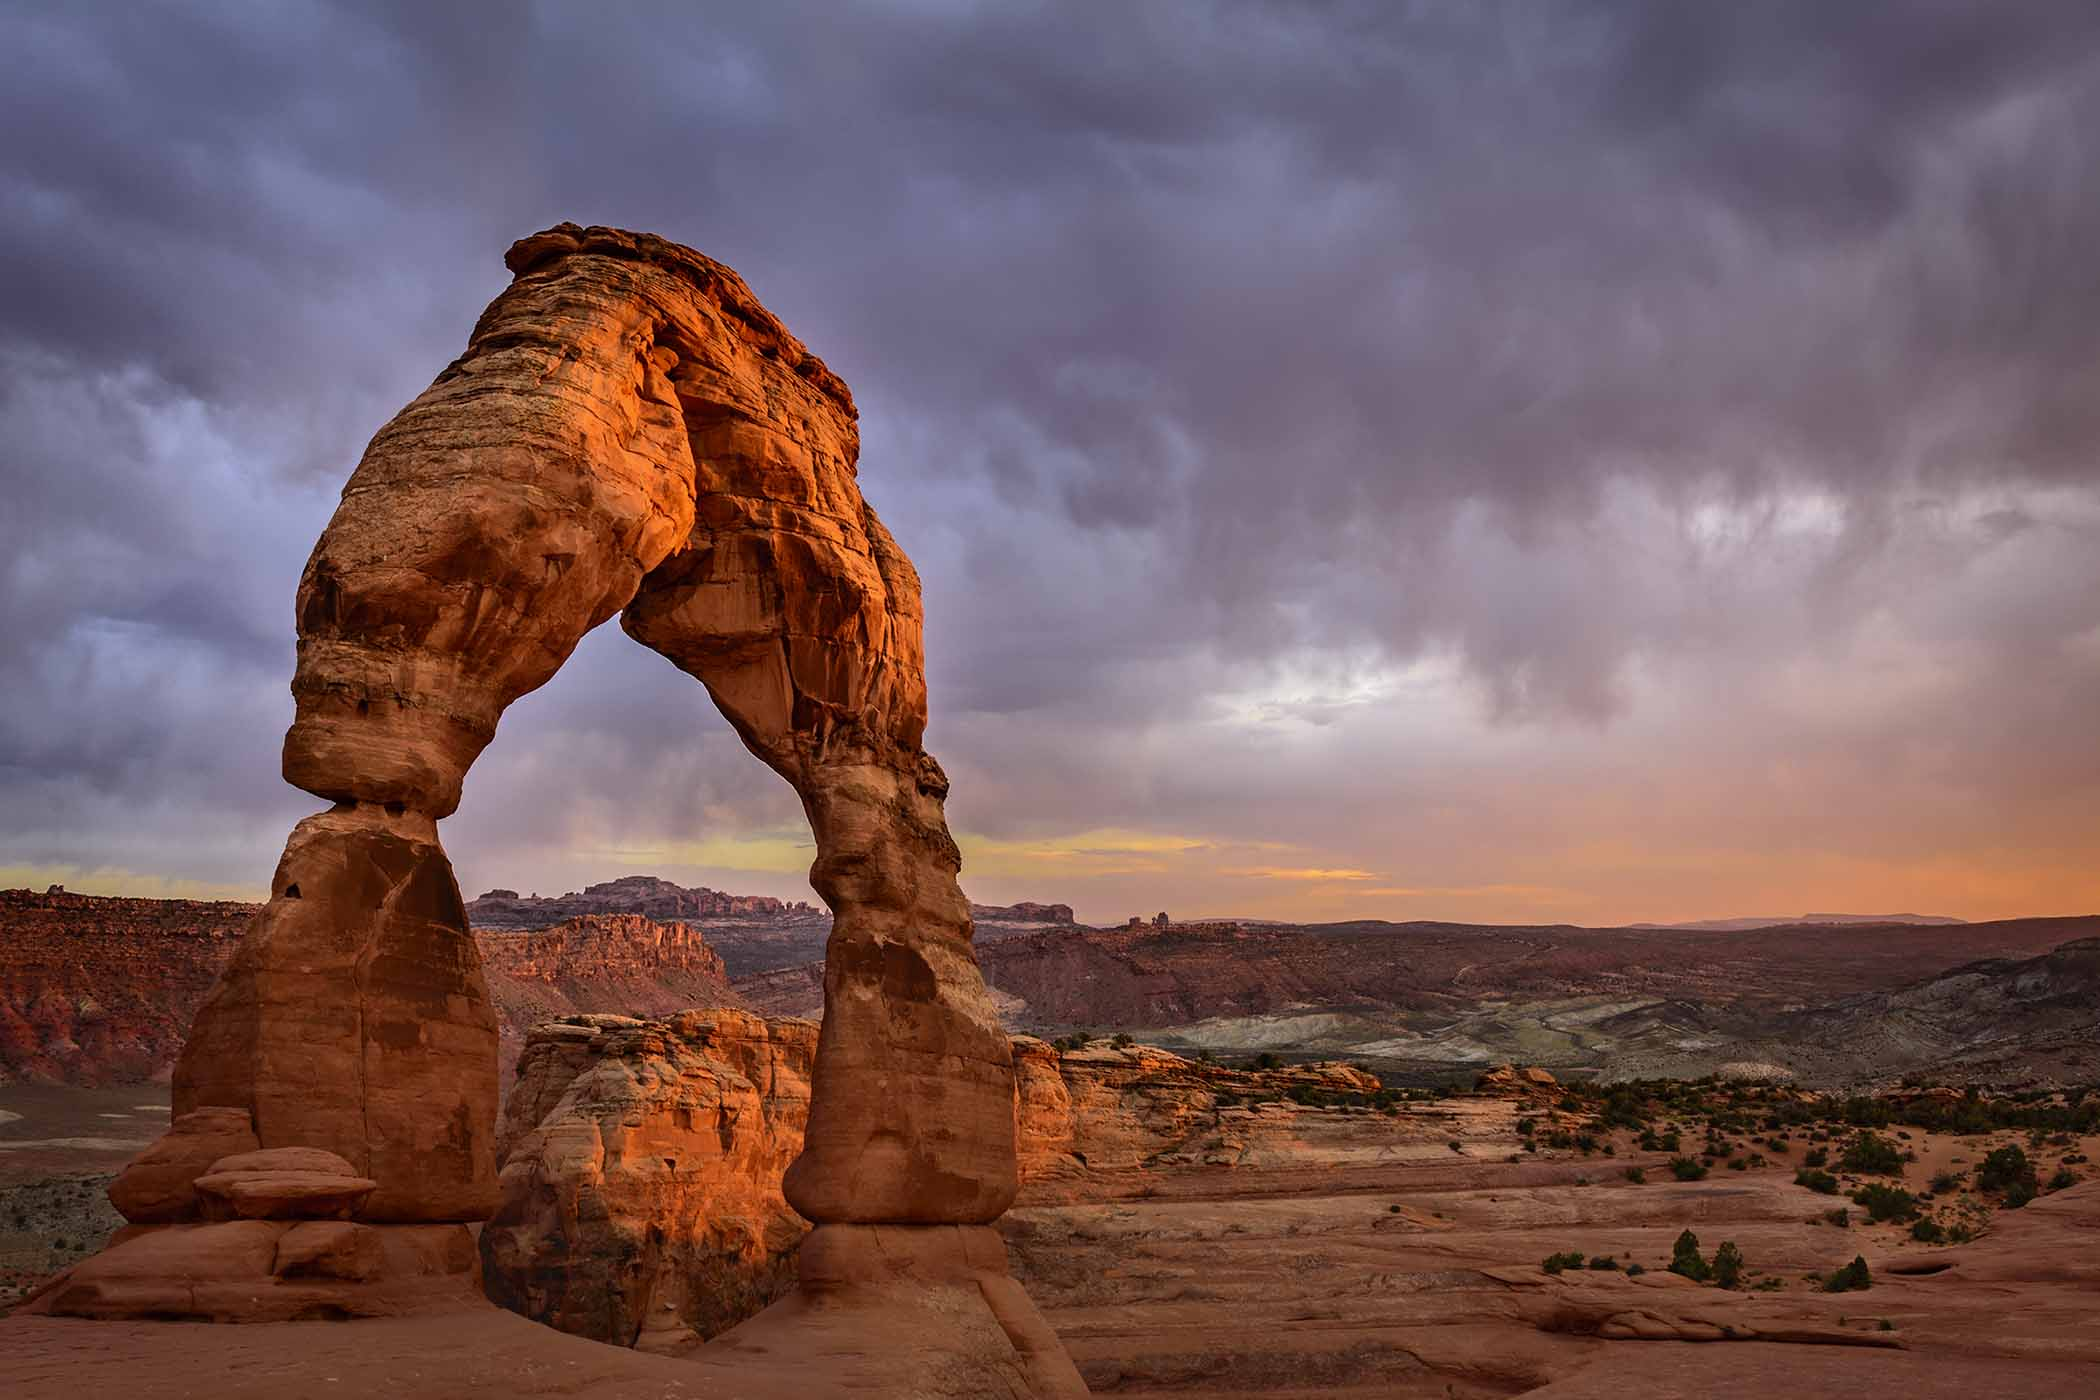 Last light on Delicate Arch; Arches National Park, Utah.